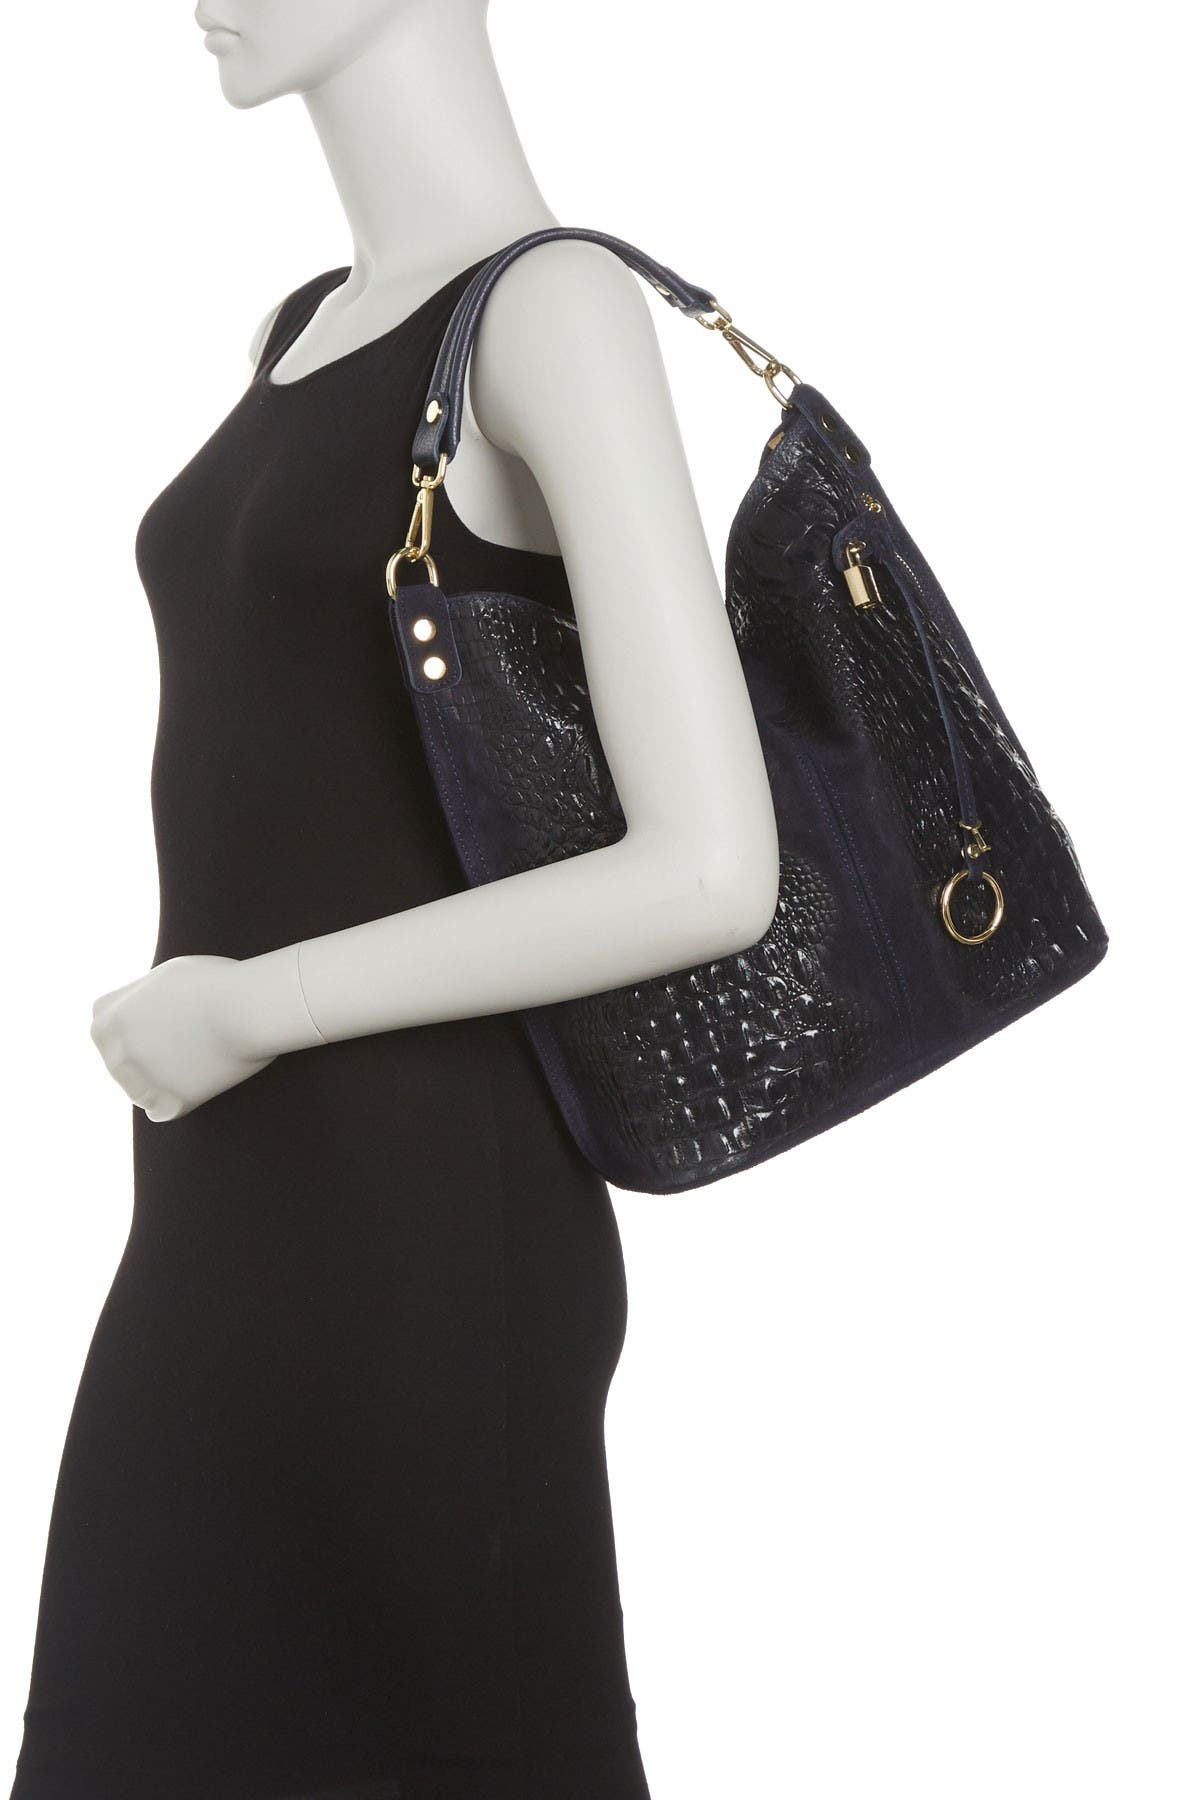 Image of Roberta M Croc Embossed Top Handle Tote Bag